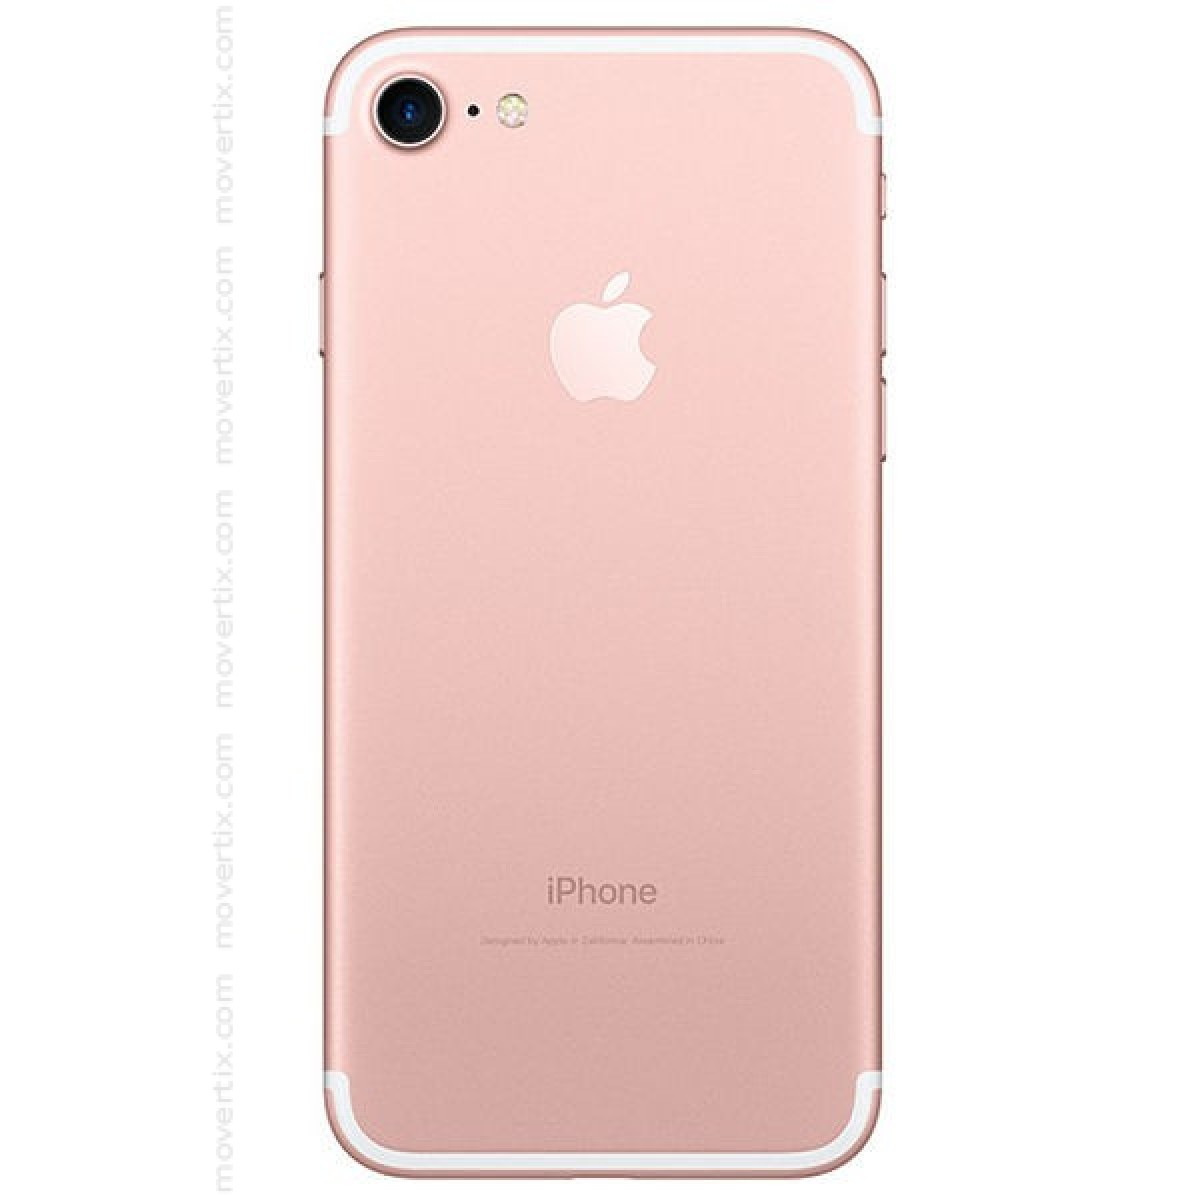 apple iphone 7 in ros gold mit 256gb 190198071286 movertix handy shop. Black Bedroom Furniture Sets. Home Design Ideas